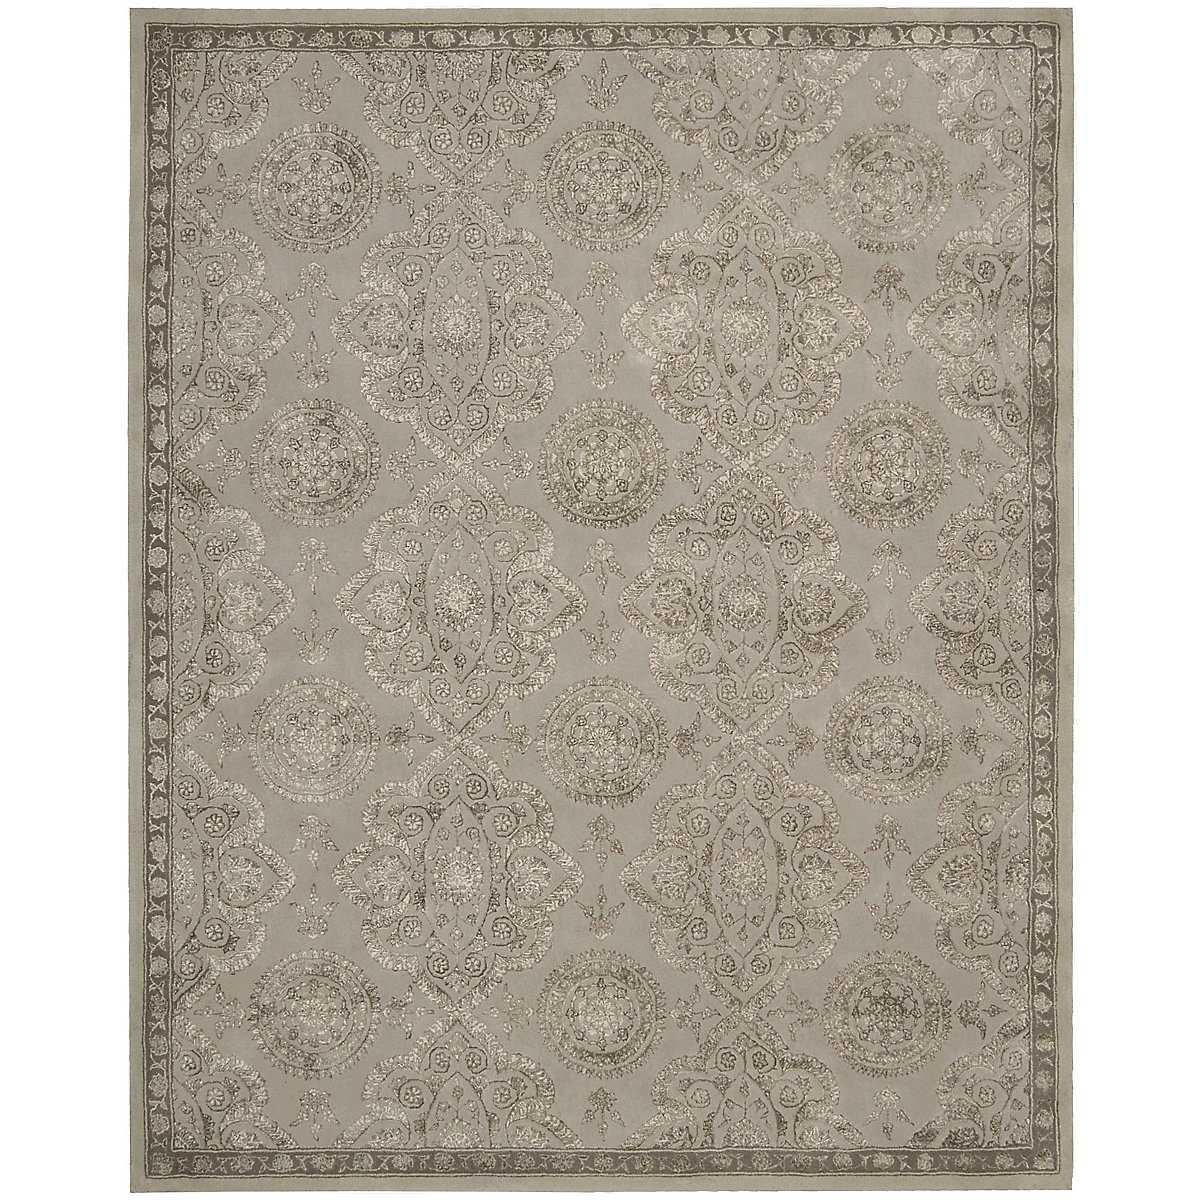 Regal Gray 8X10 Area Rug